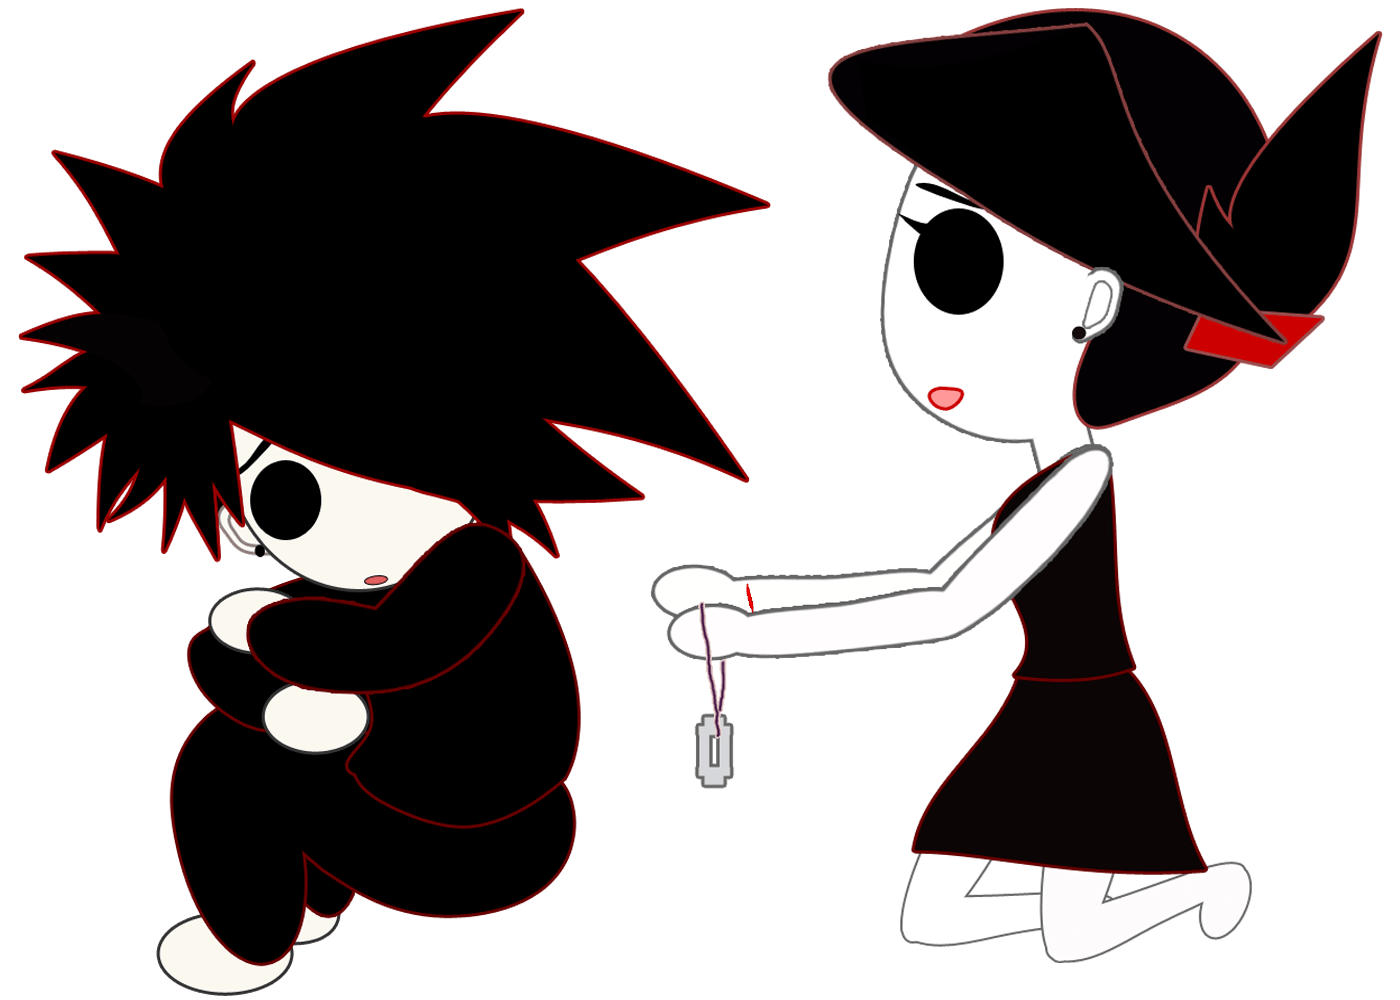 Couple Cartoon Wallpaper With Quotes Emo Love Wallpapers 2015 Wallpaper Cave